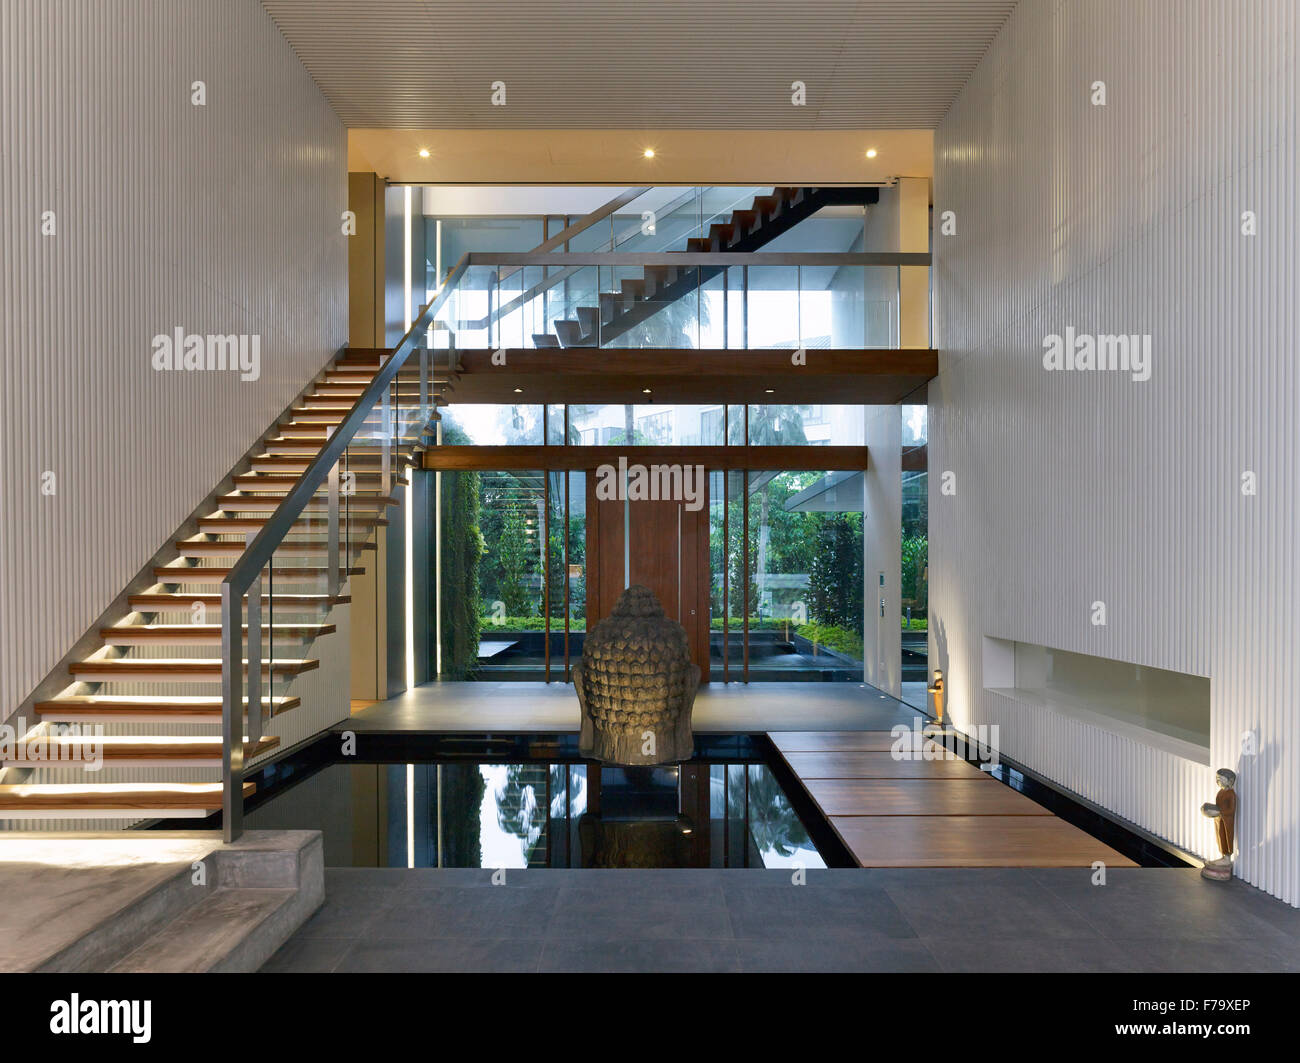 Open Plan Entrance Hall And Staircase With Pool Of Water